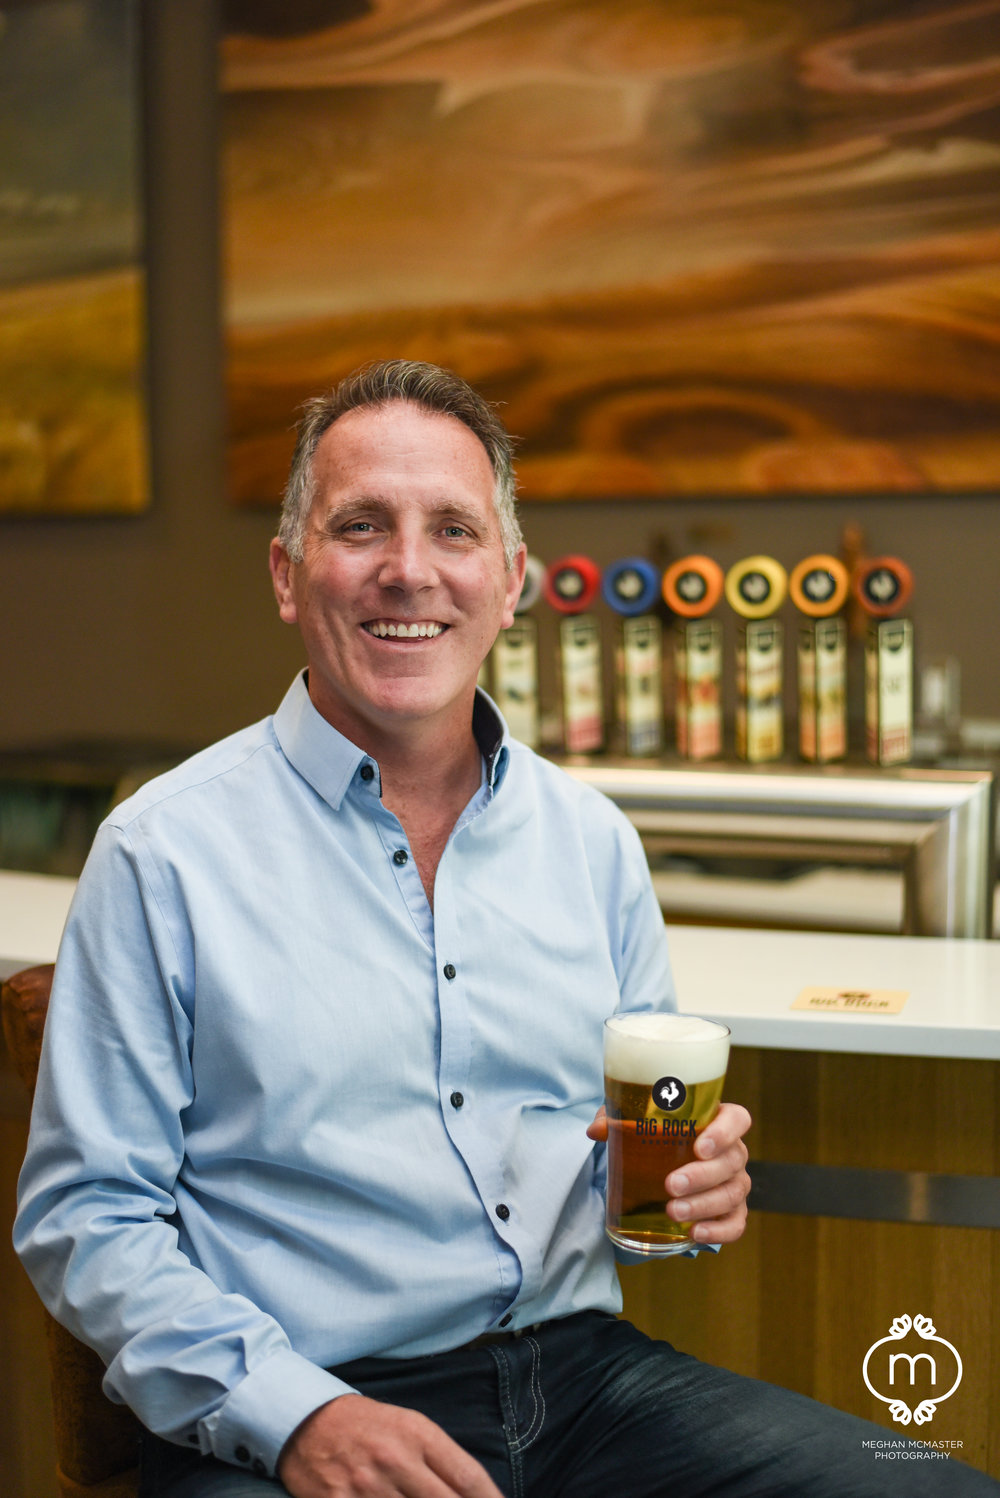 Big Rock Brewery CEO, Wayne Arsenault